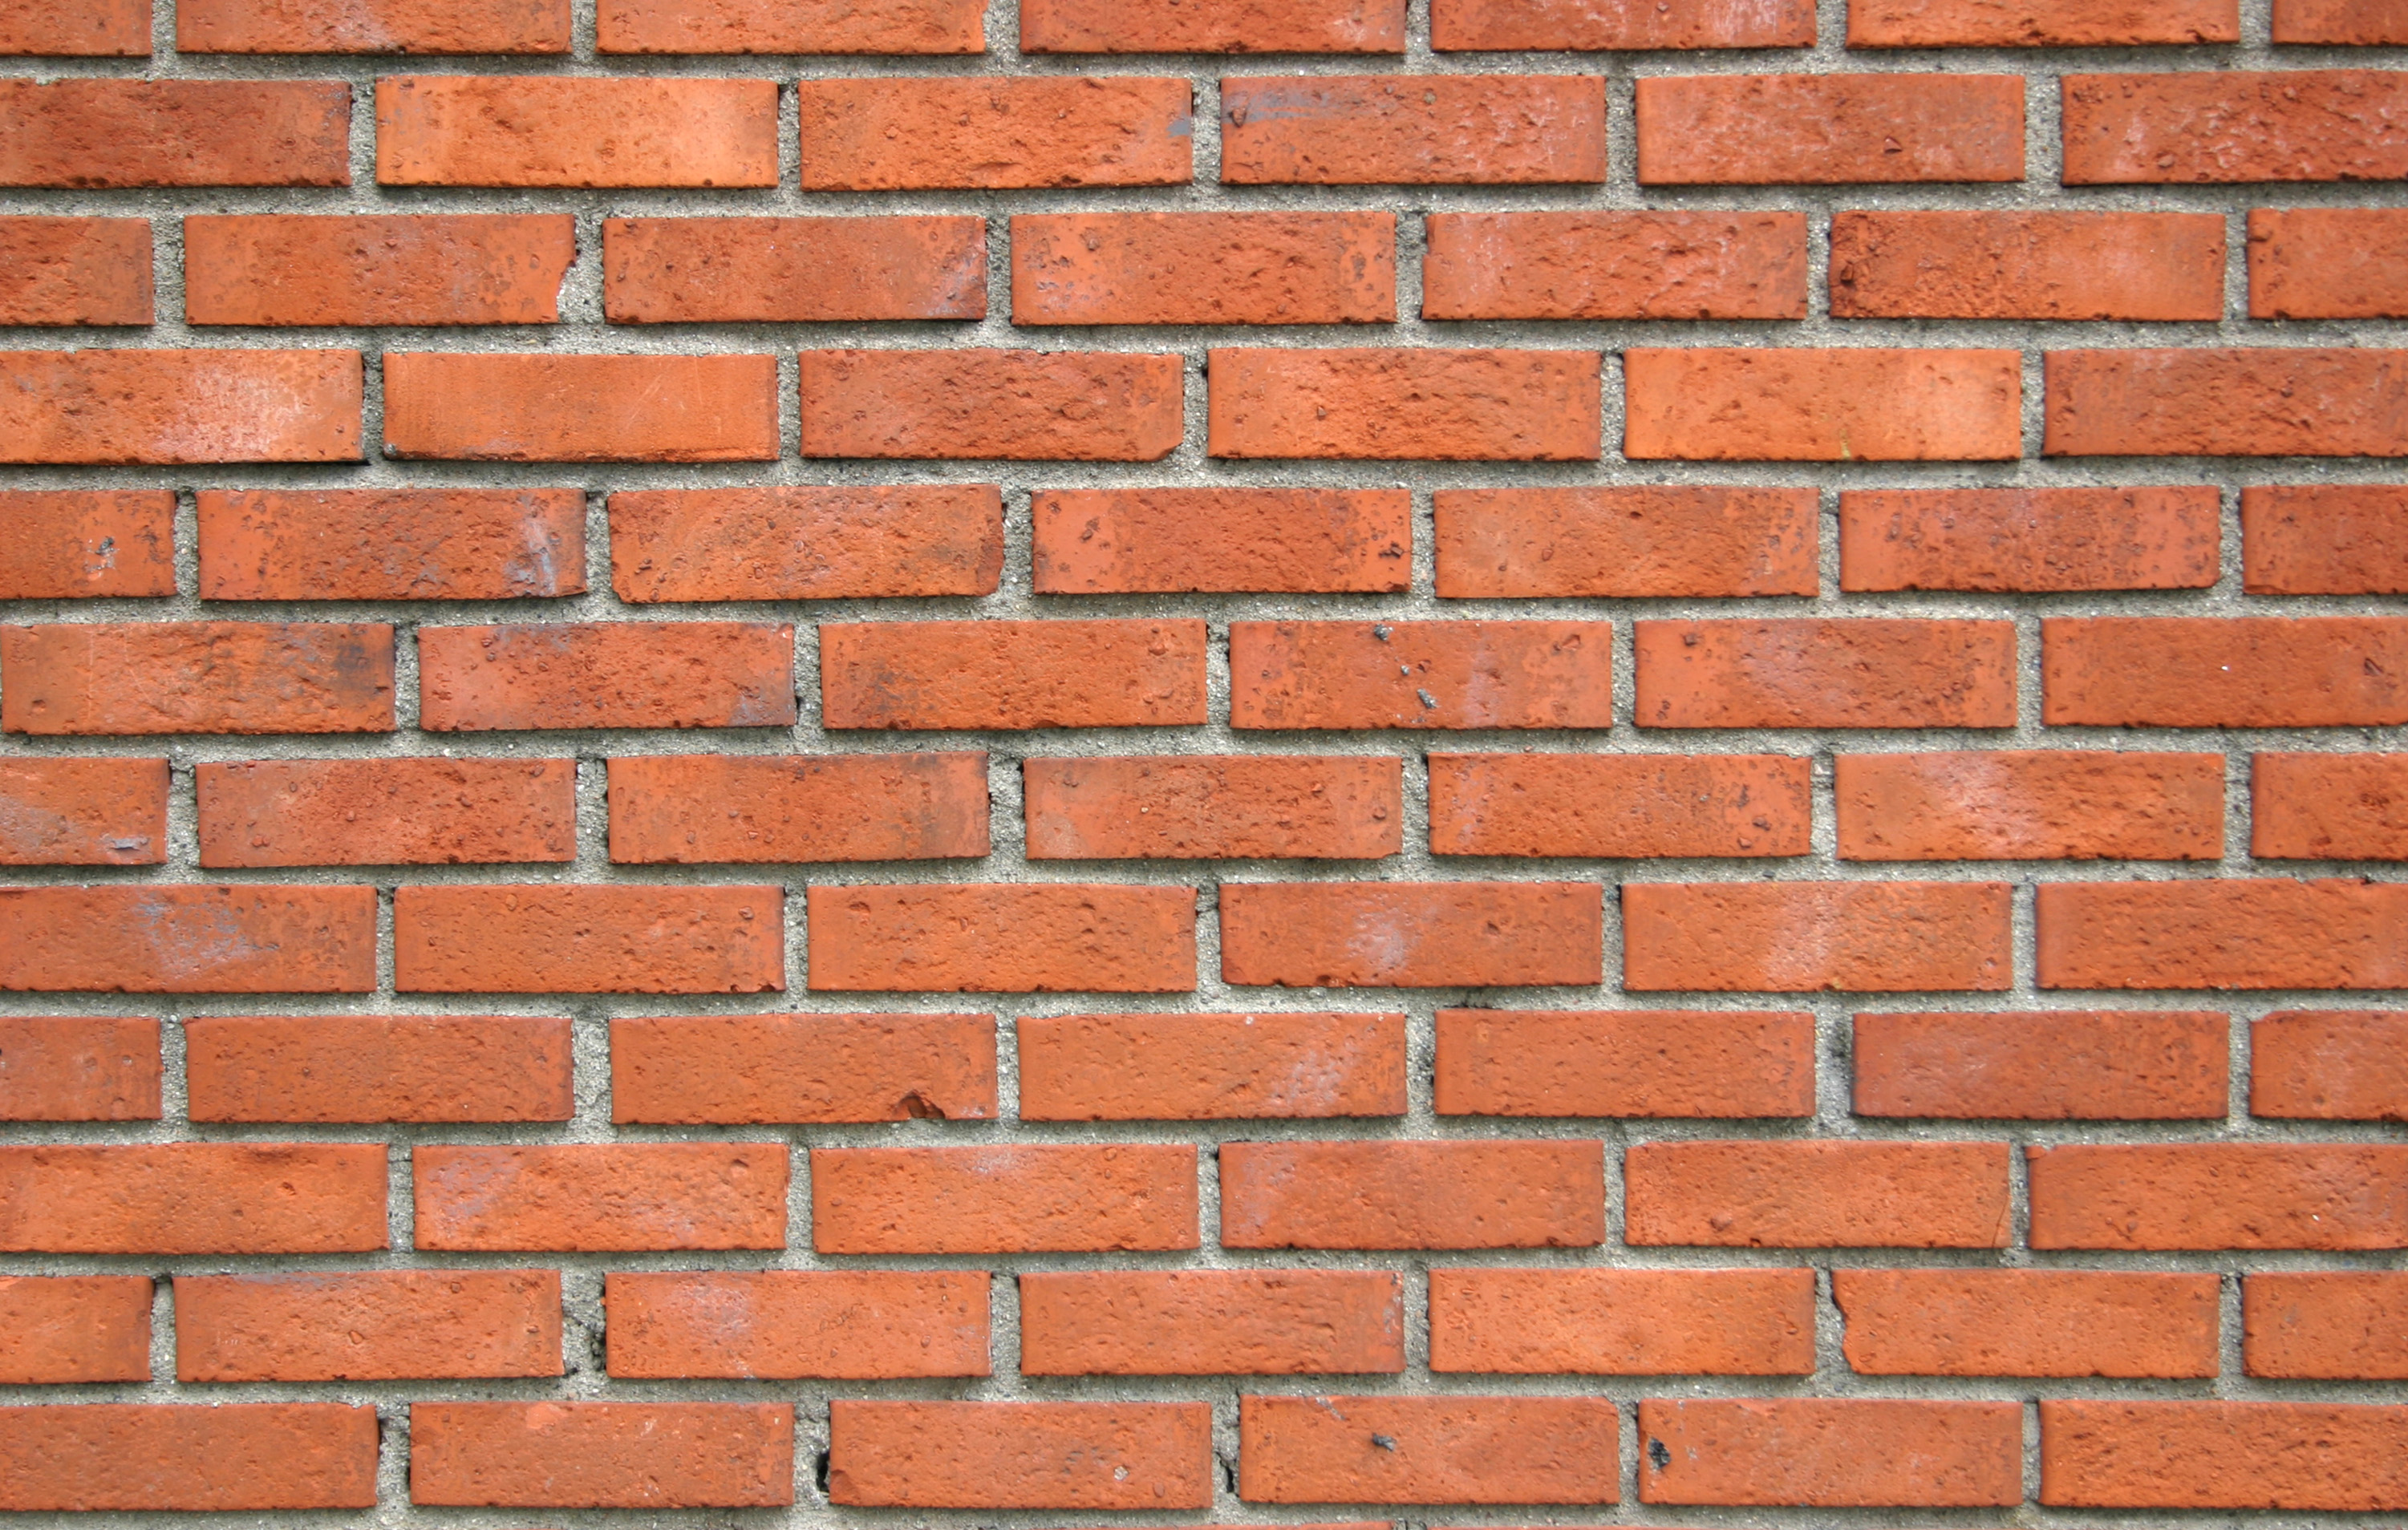 Download-texture-brick-wall-brick-wall-Texture-brick-wall-wallpaper-wpc9204474